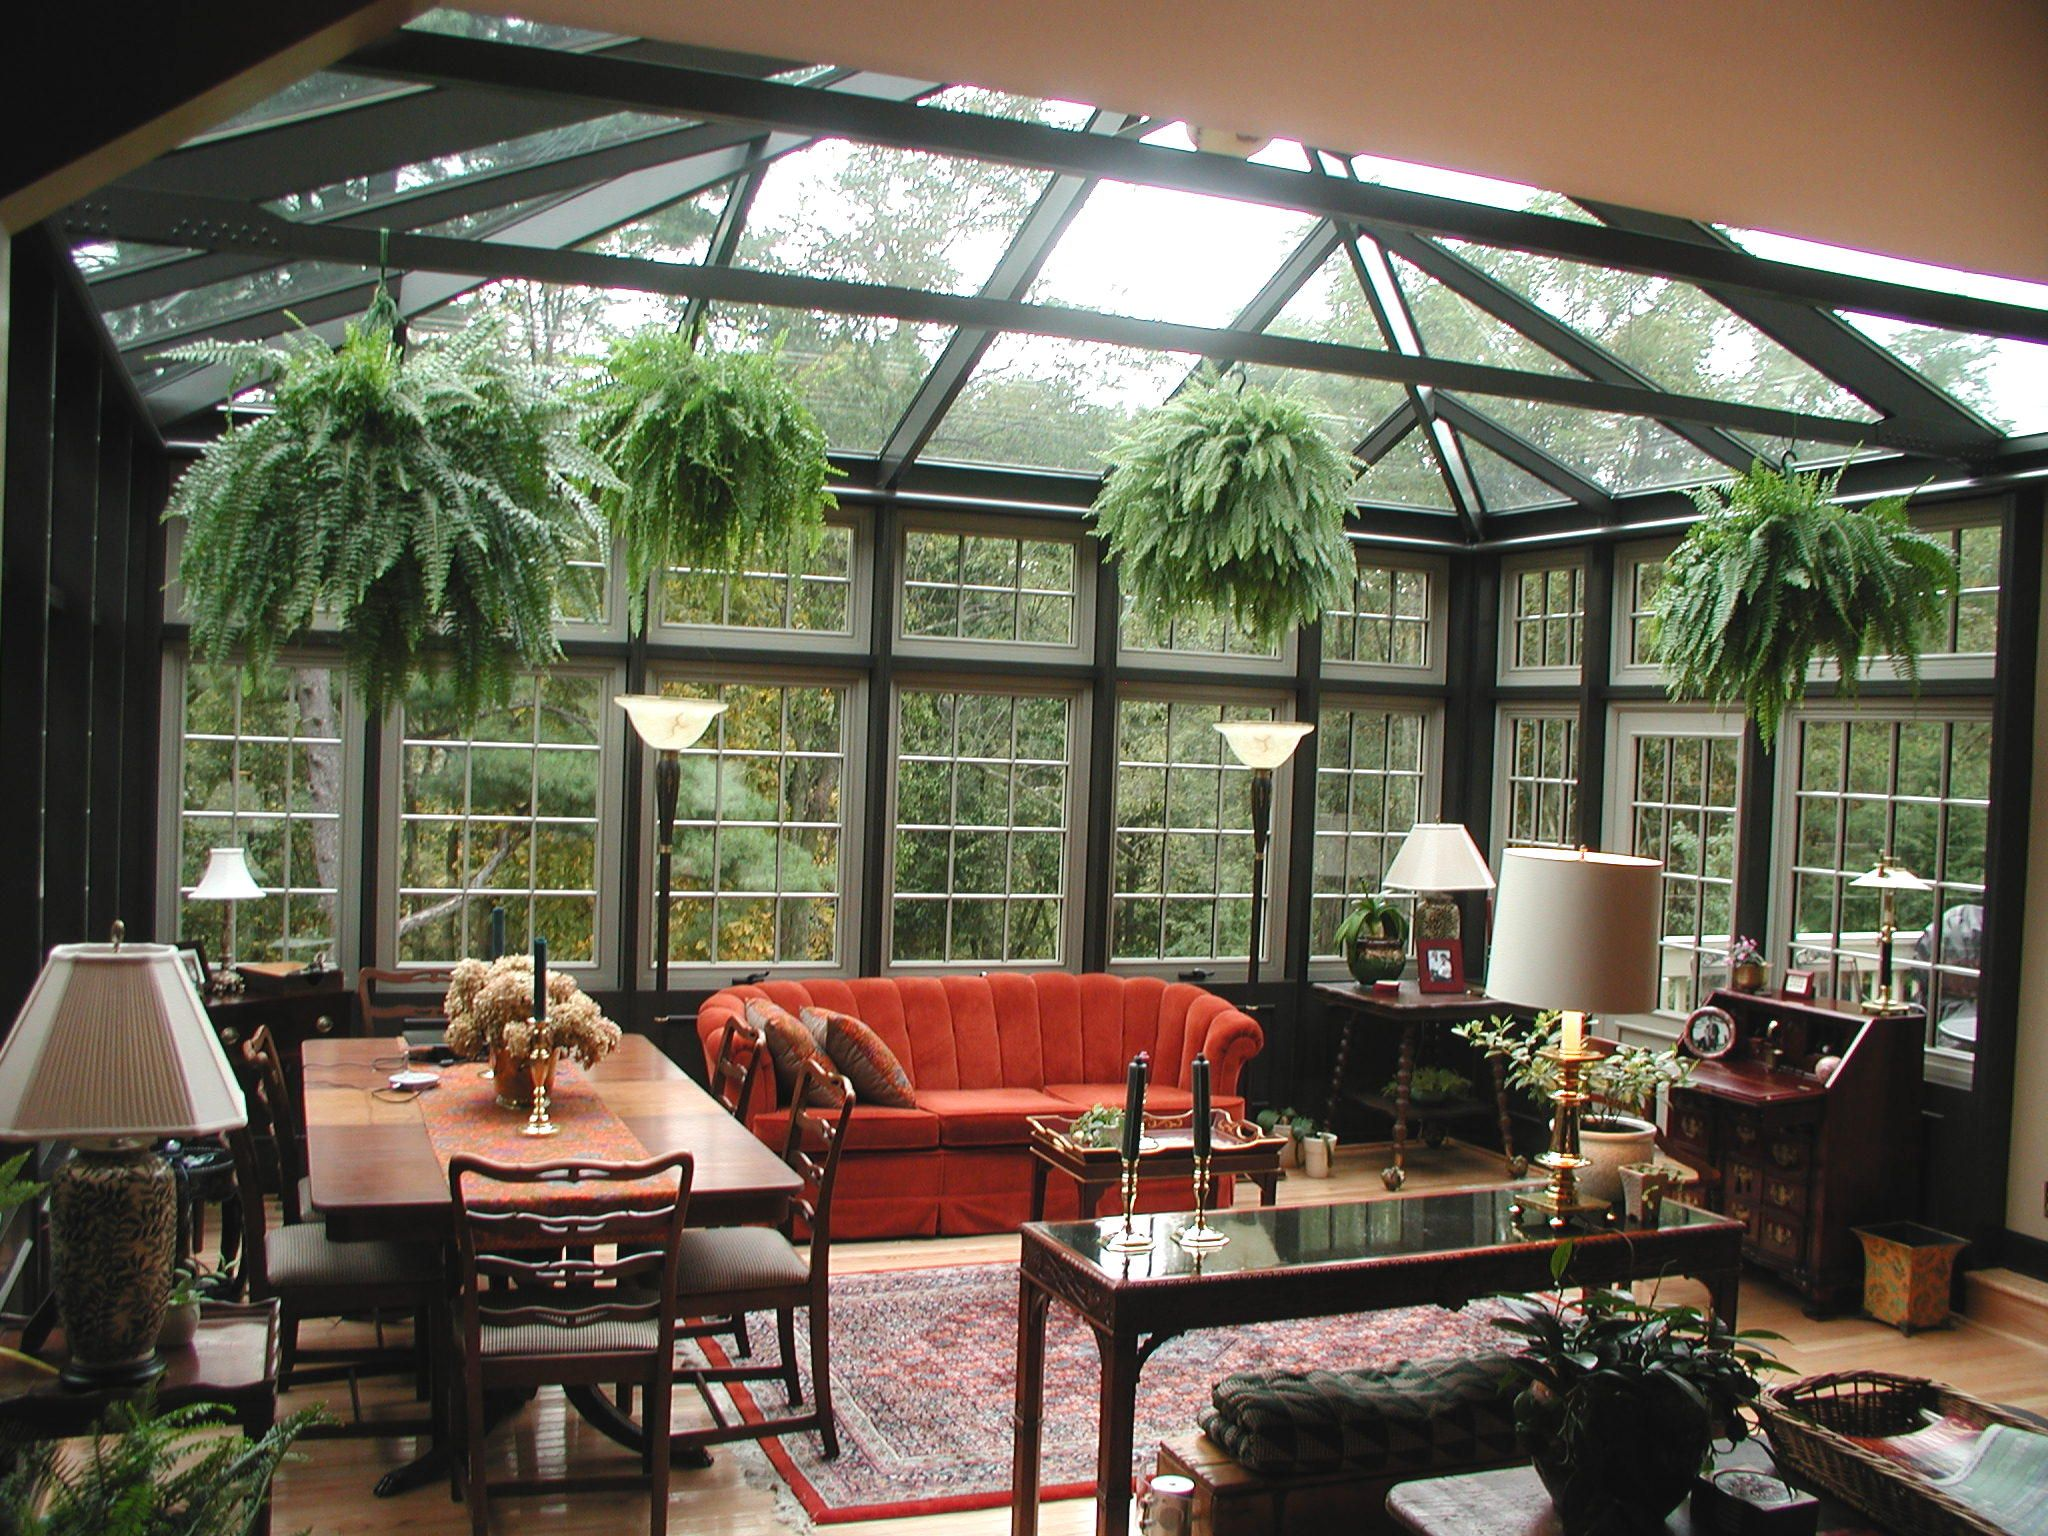 Inspiring Sunrooms For That Much Needed Sunshine